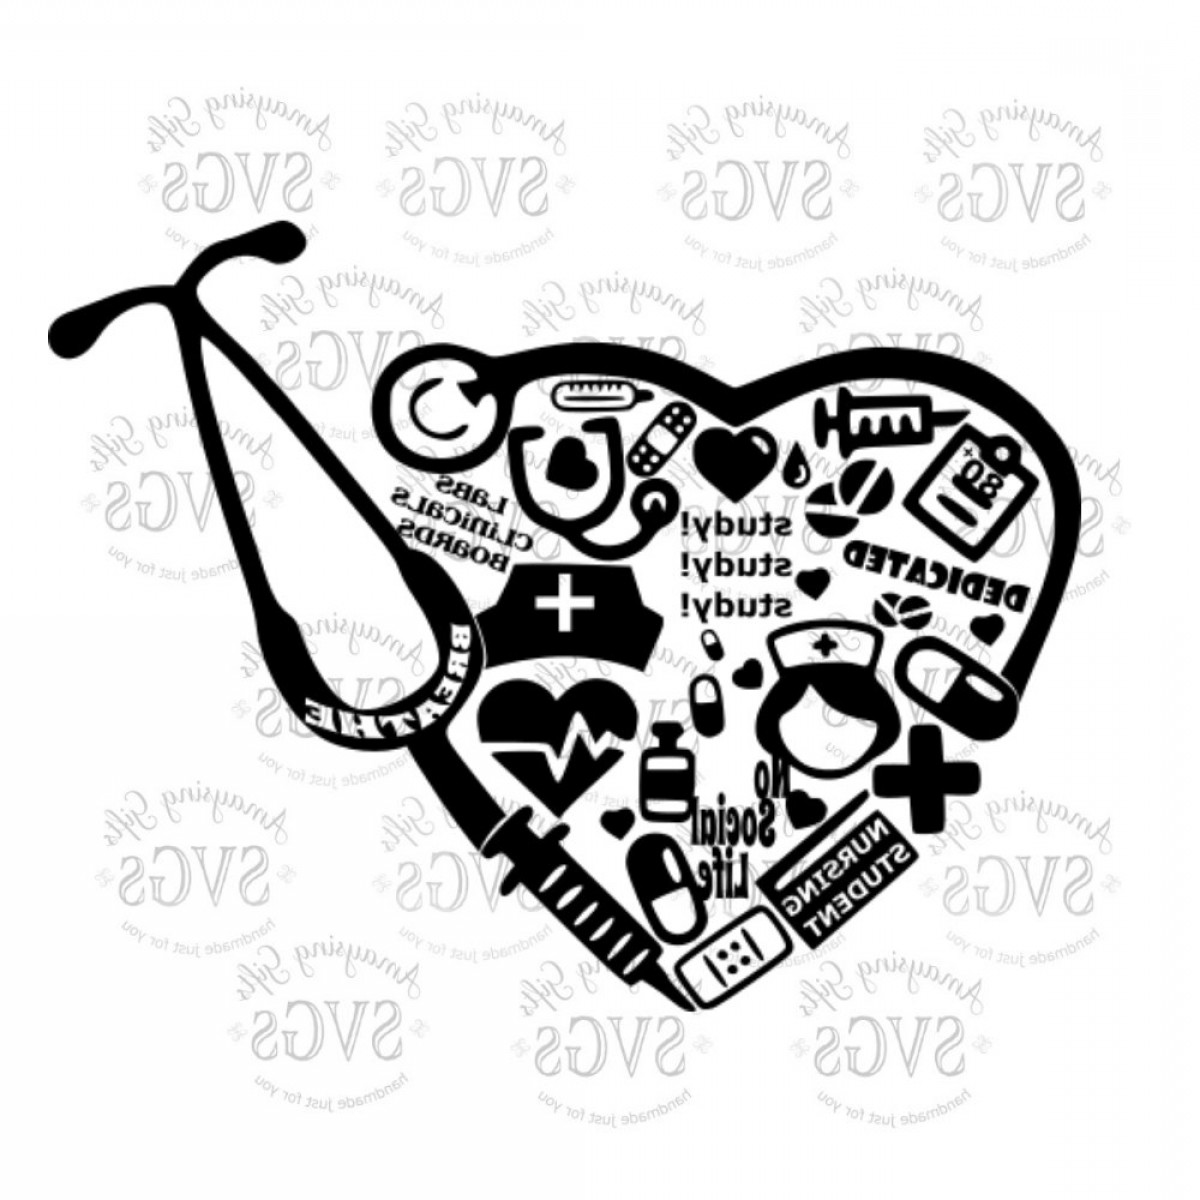 Nurse Vector Art SVG: Svg Nursing Student Collage Nurse Lpn Rn